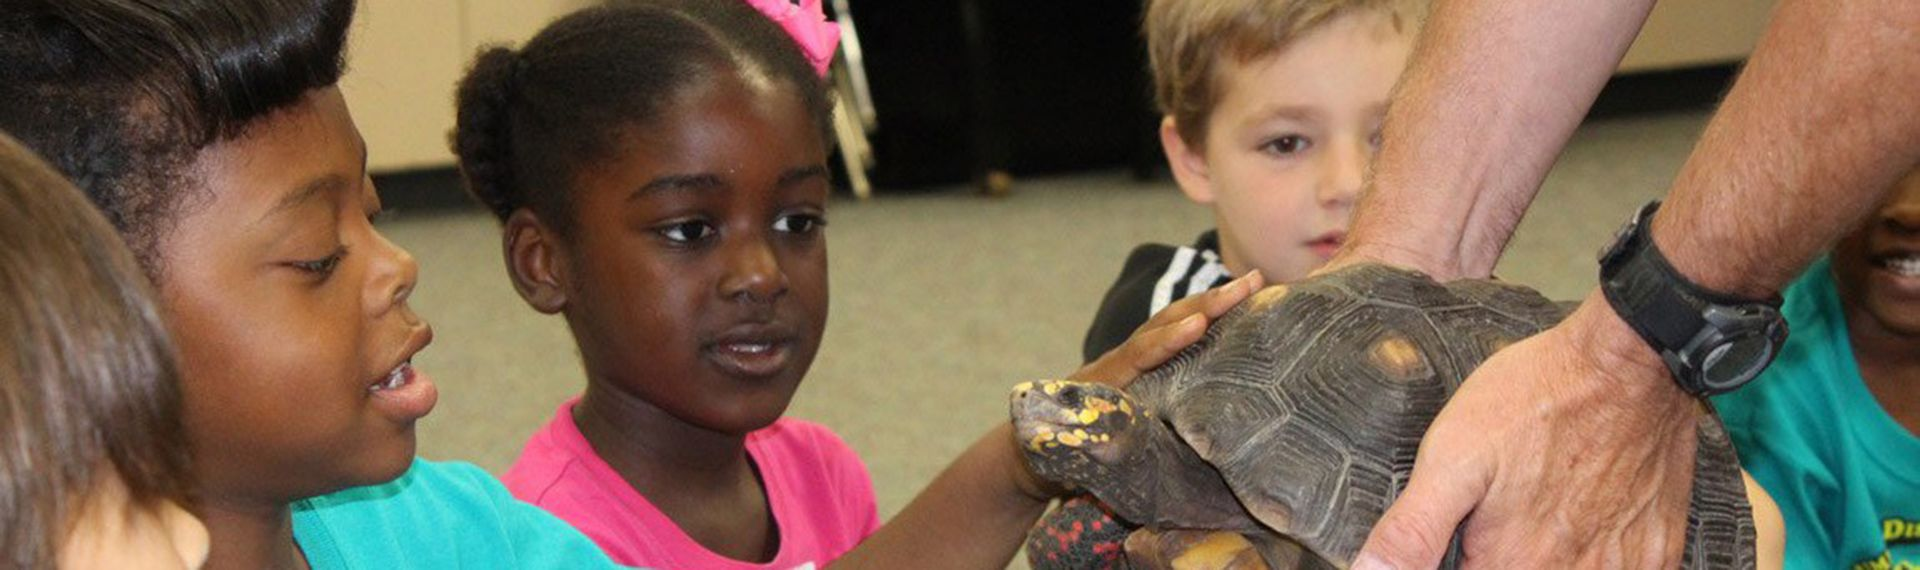 Lower School students gather to look at a turtle.